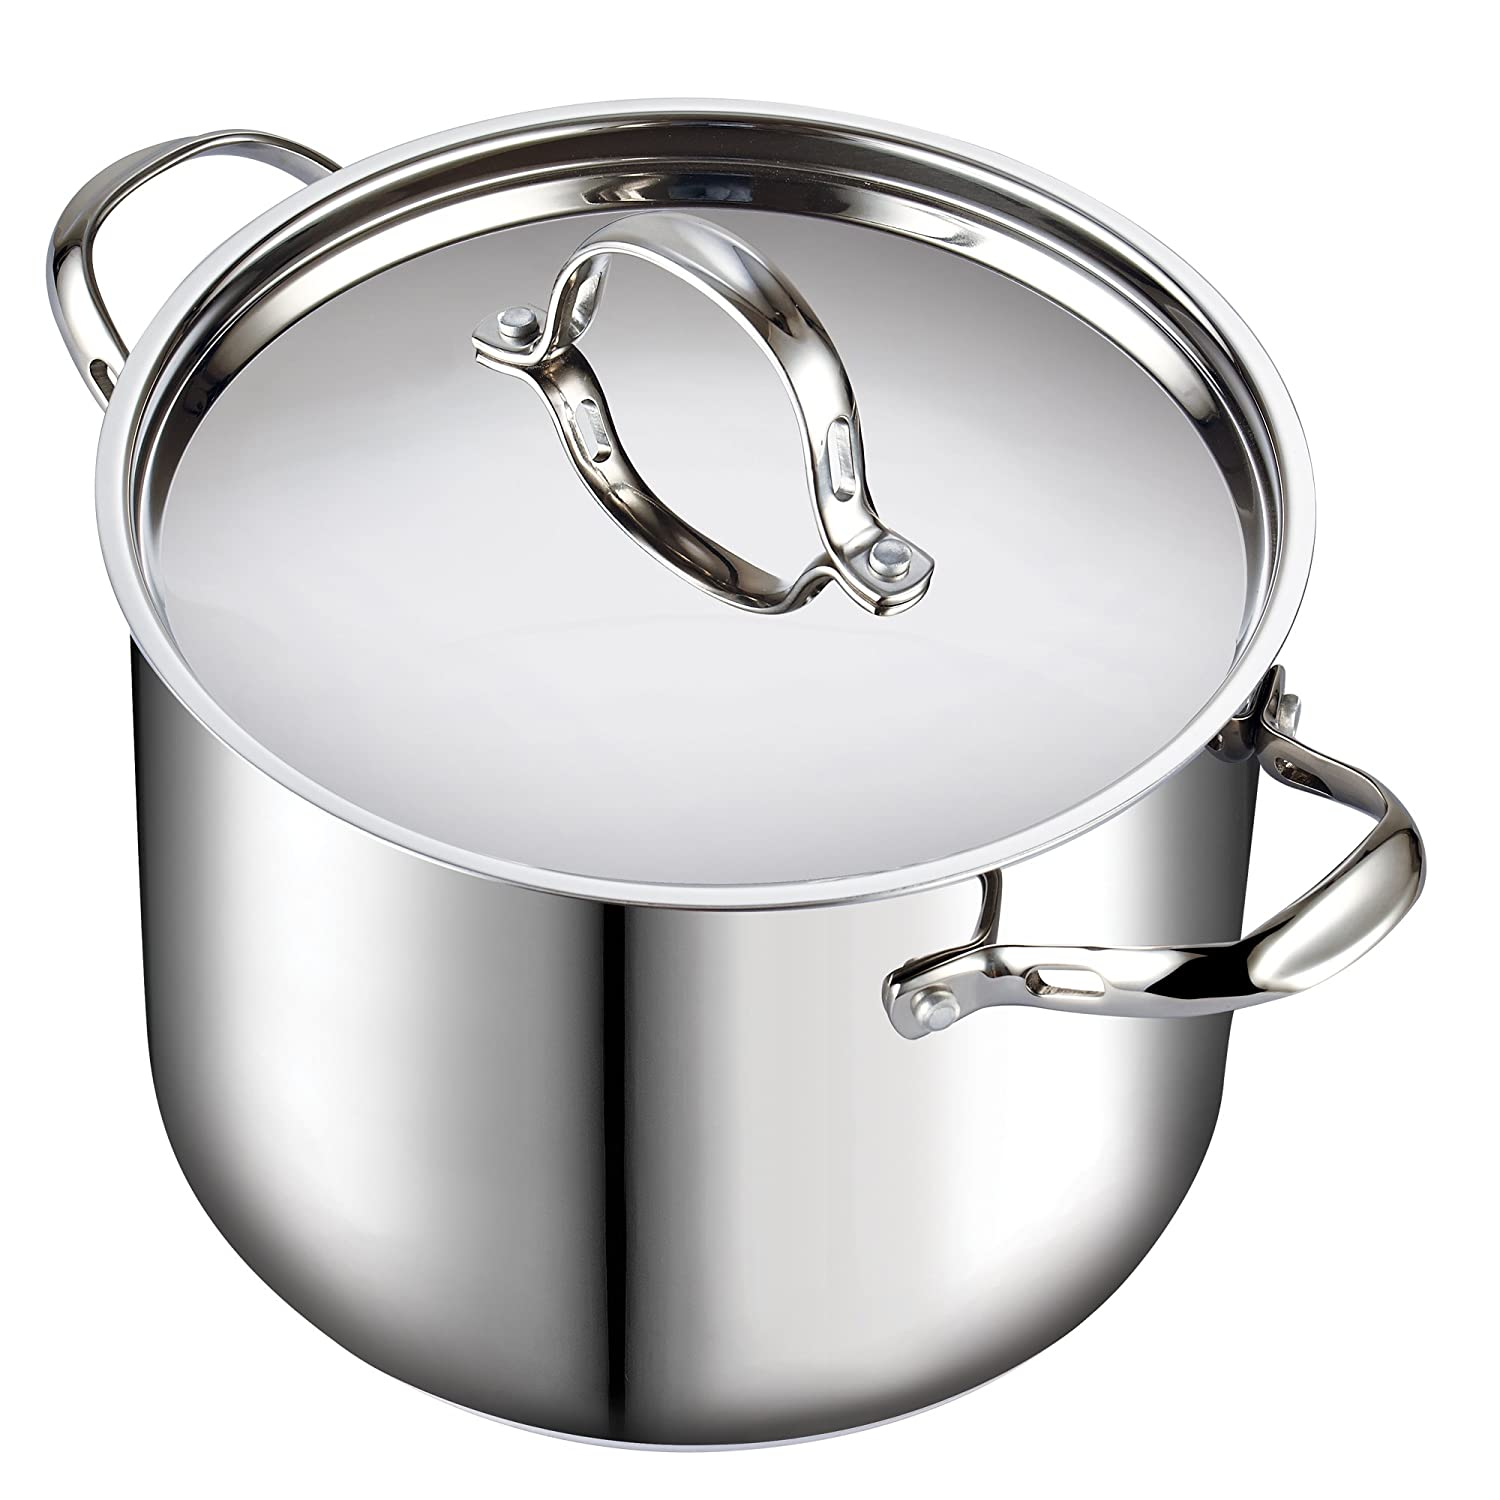 Cooks Standard Classic 02520 12 quart Stainless Steel Stockpot with